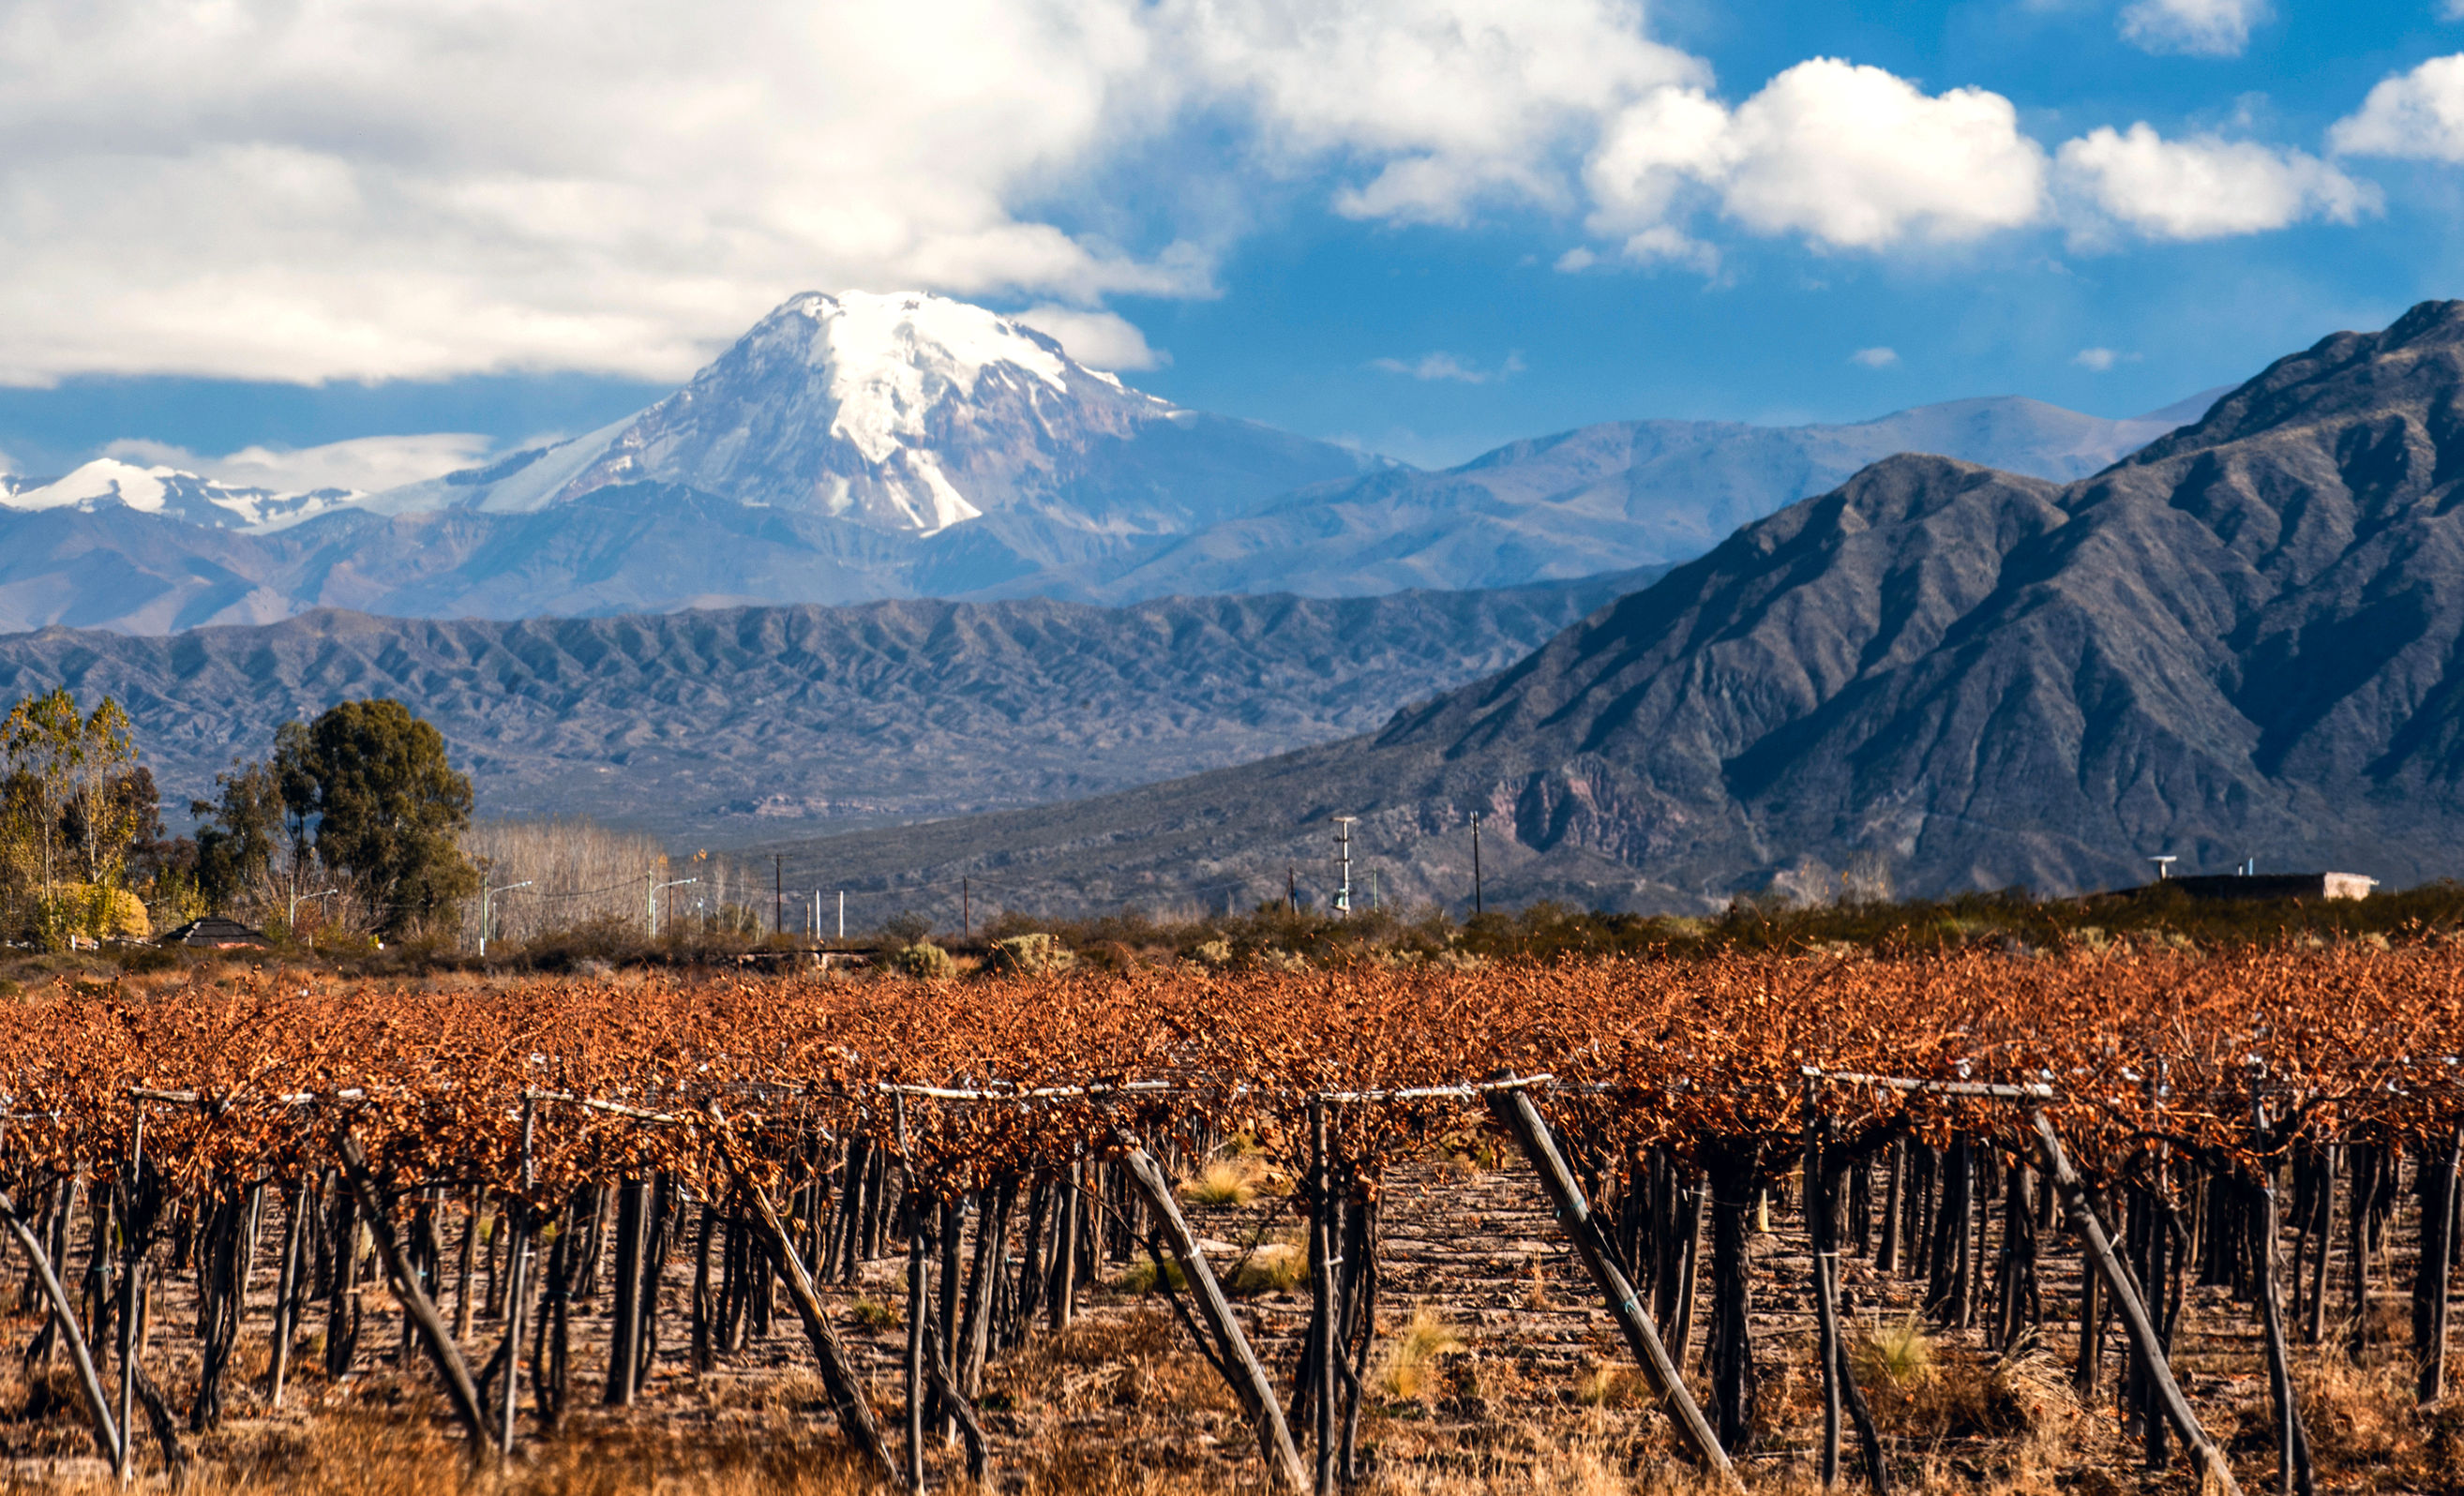 Wein Chardonnay Mount Aconcagua And Her Namesakes – Wine, Wit, And Wisdom